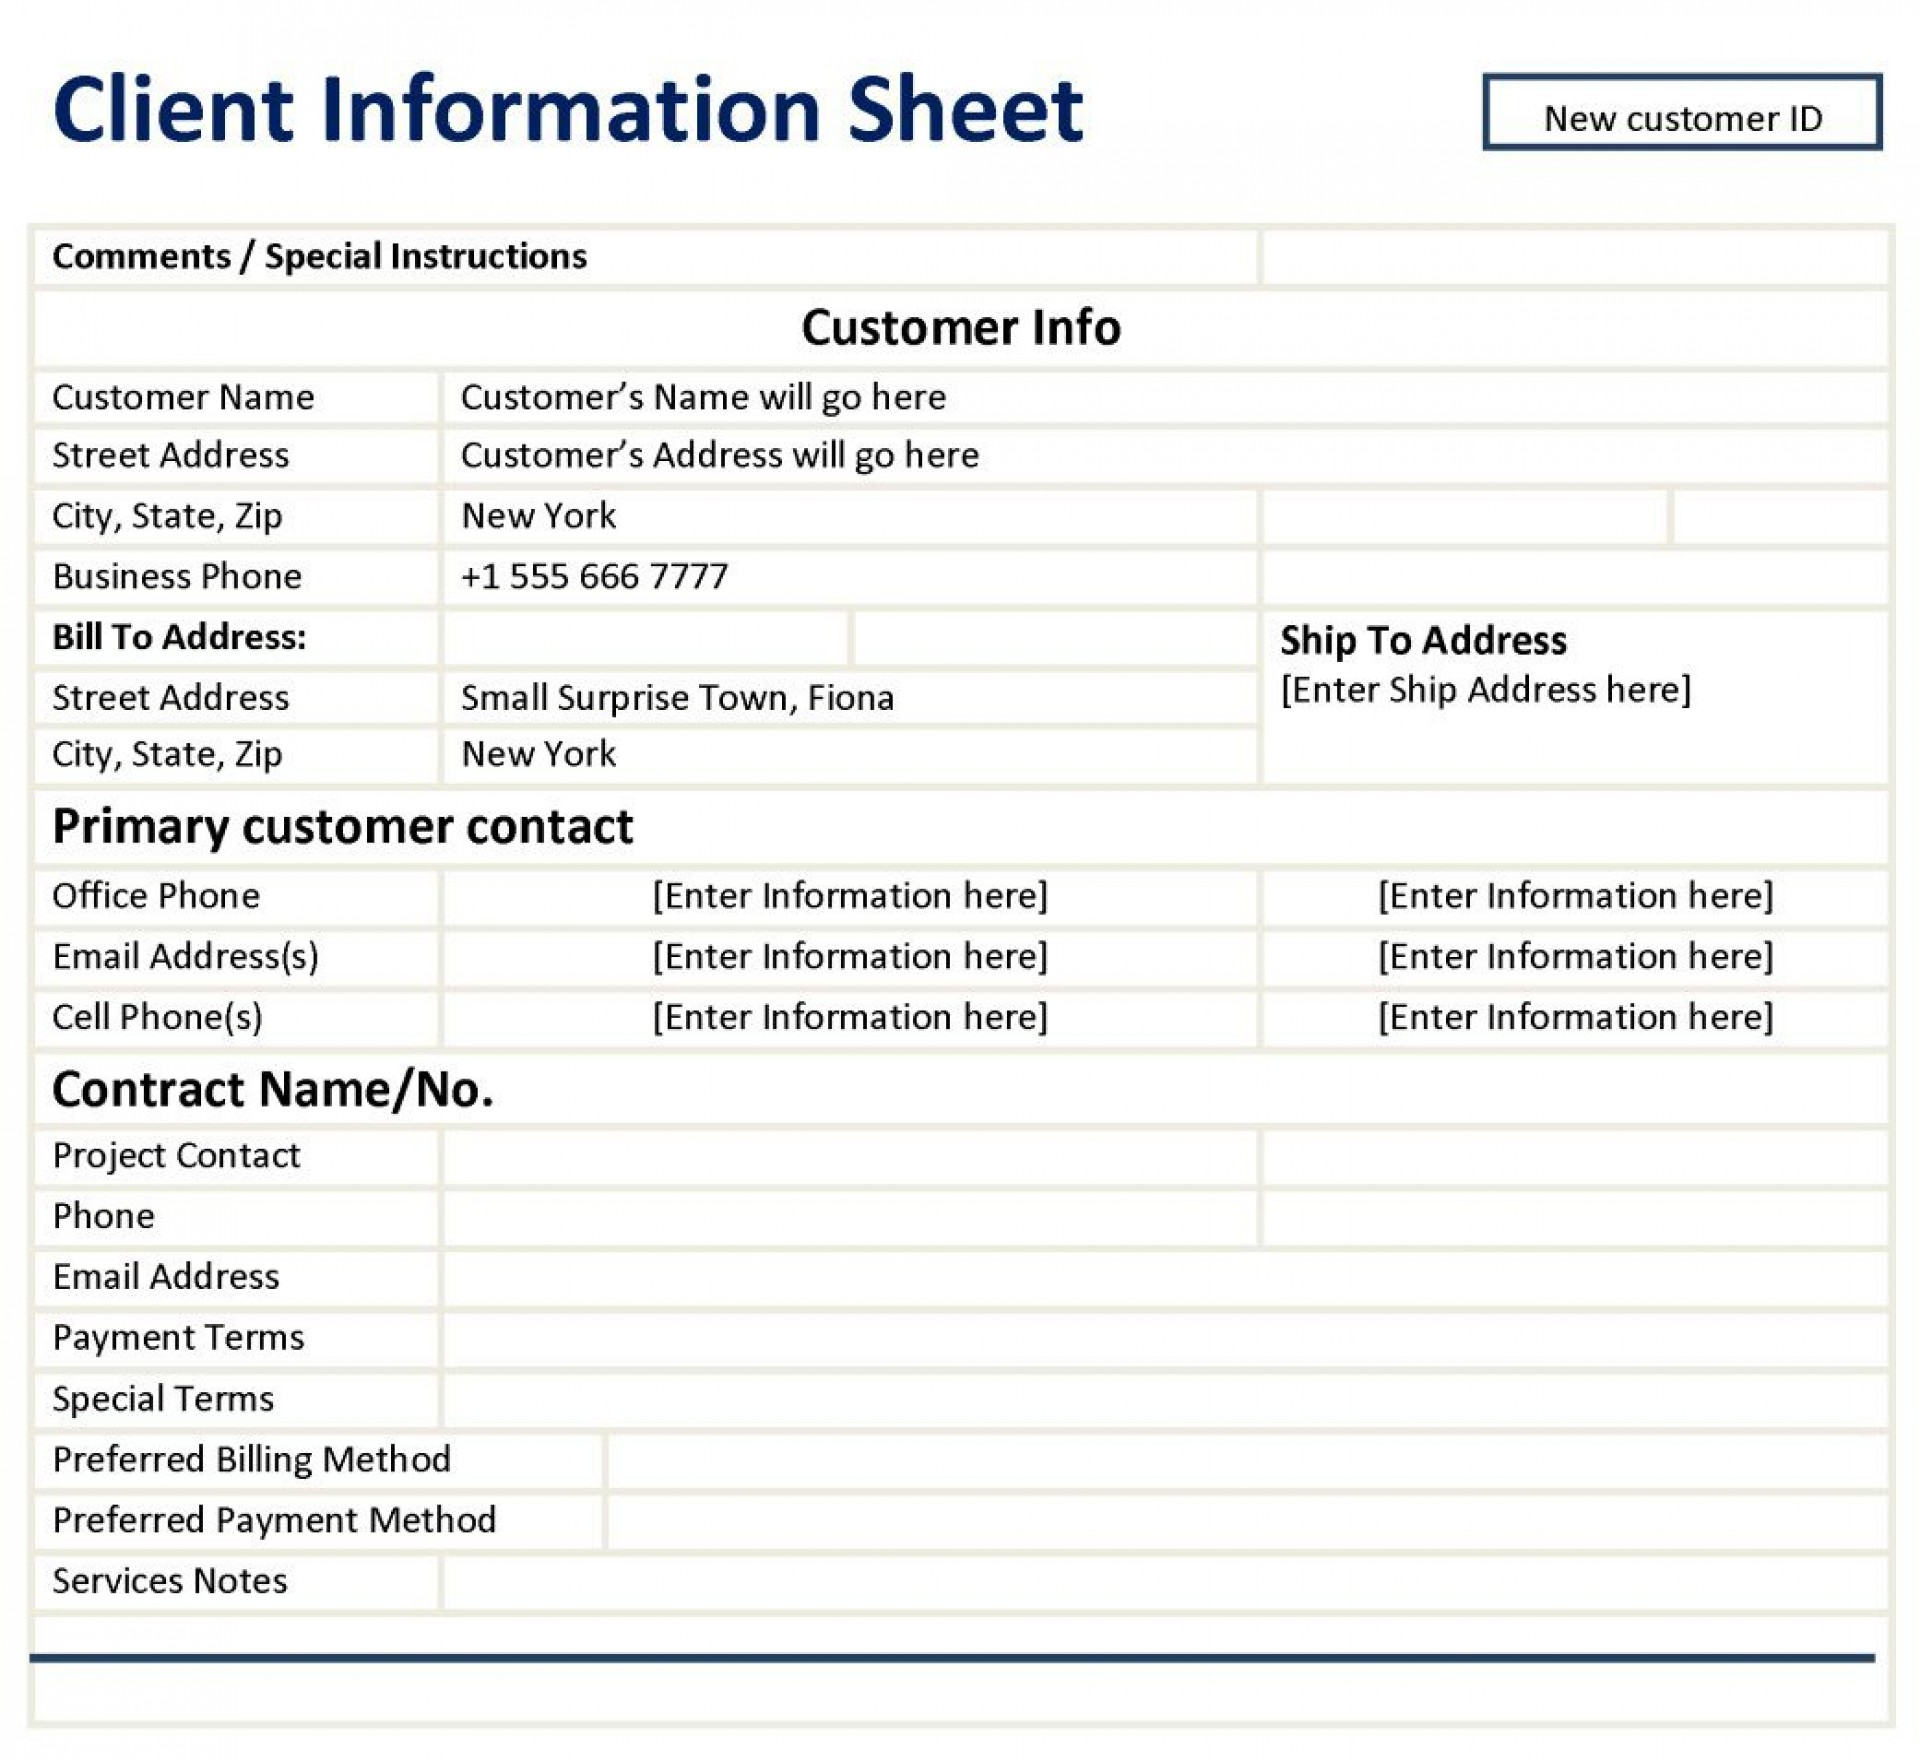 004 Awful Customer Information Sheet Template Highest Quality  New Info Excel Spreadsheet1920